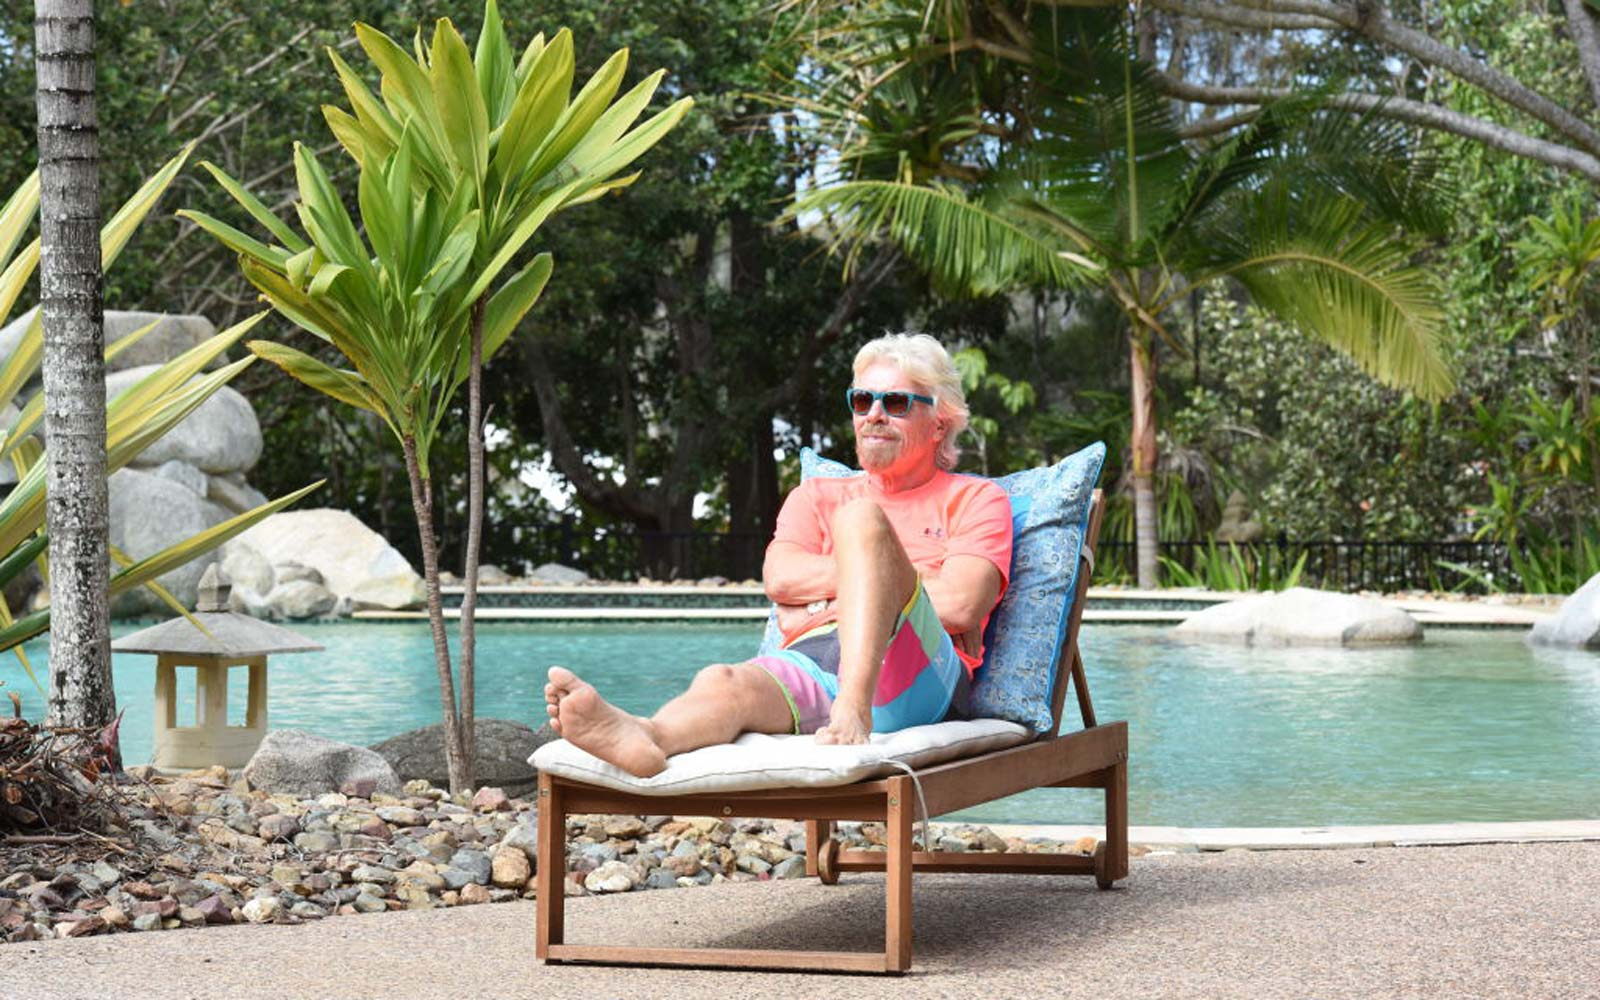 Sir Richard Branson on his Australian Island, MakePeace, Noosa, Queensland, Australia